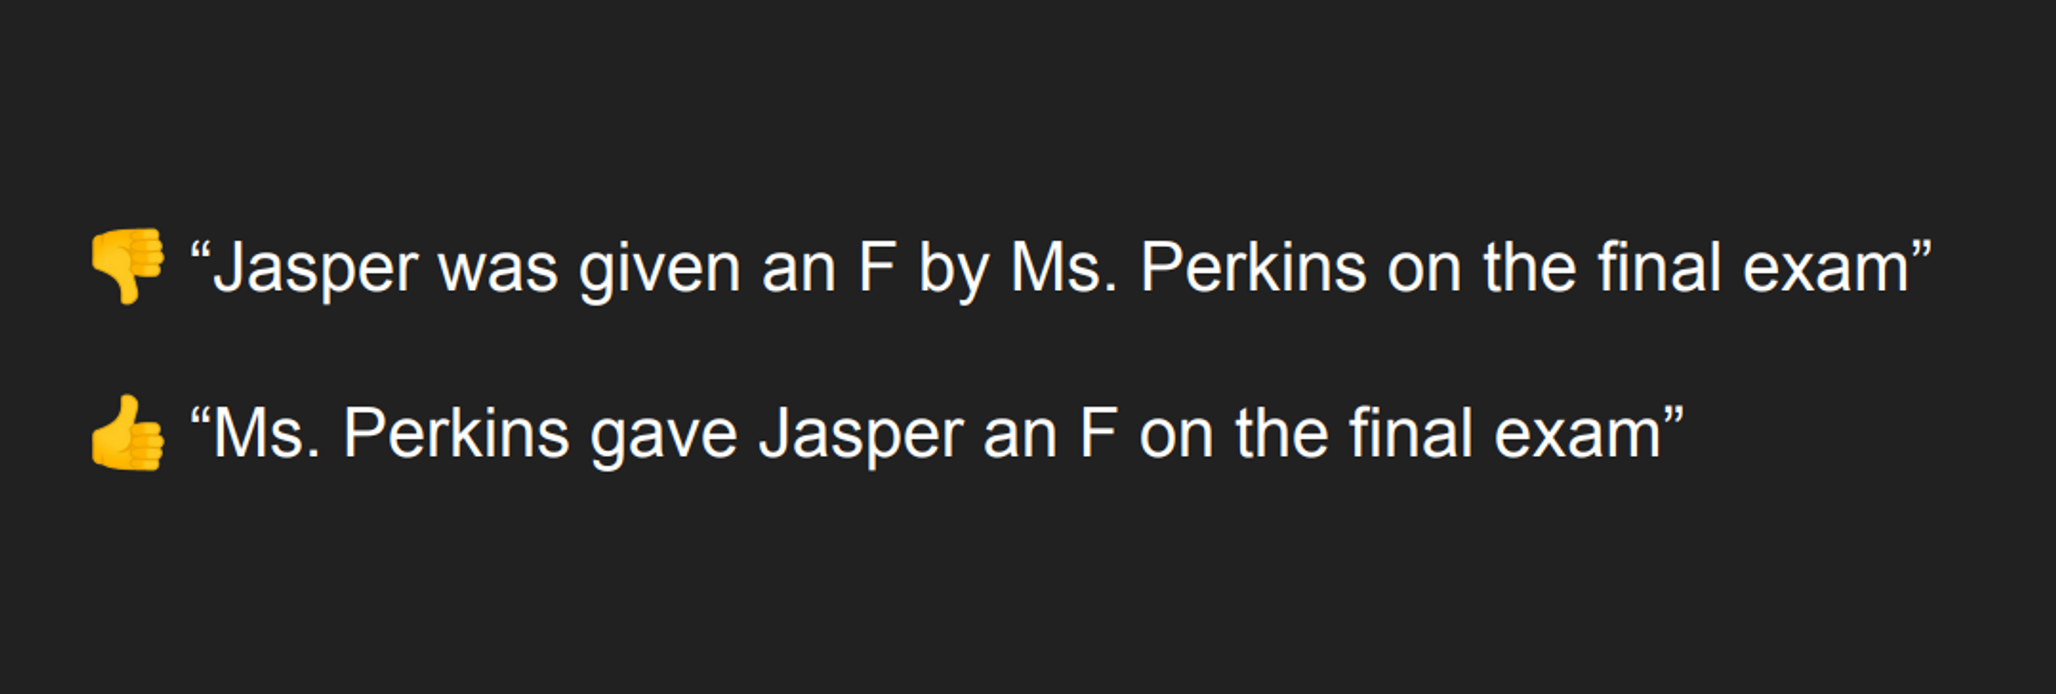 "👎 ""Jasper was given an F by Ms. Perkins on the final exam"" 👍 ""Ms. Perkins gave Jasper an F on the final exam"""